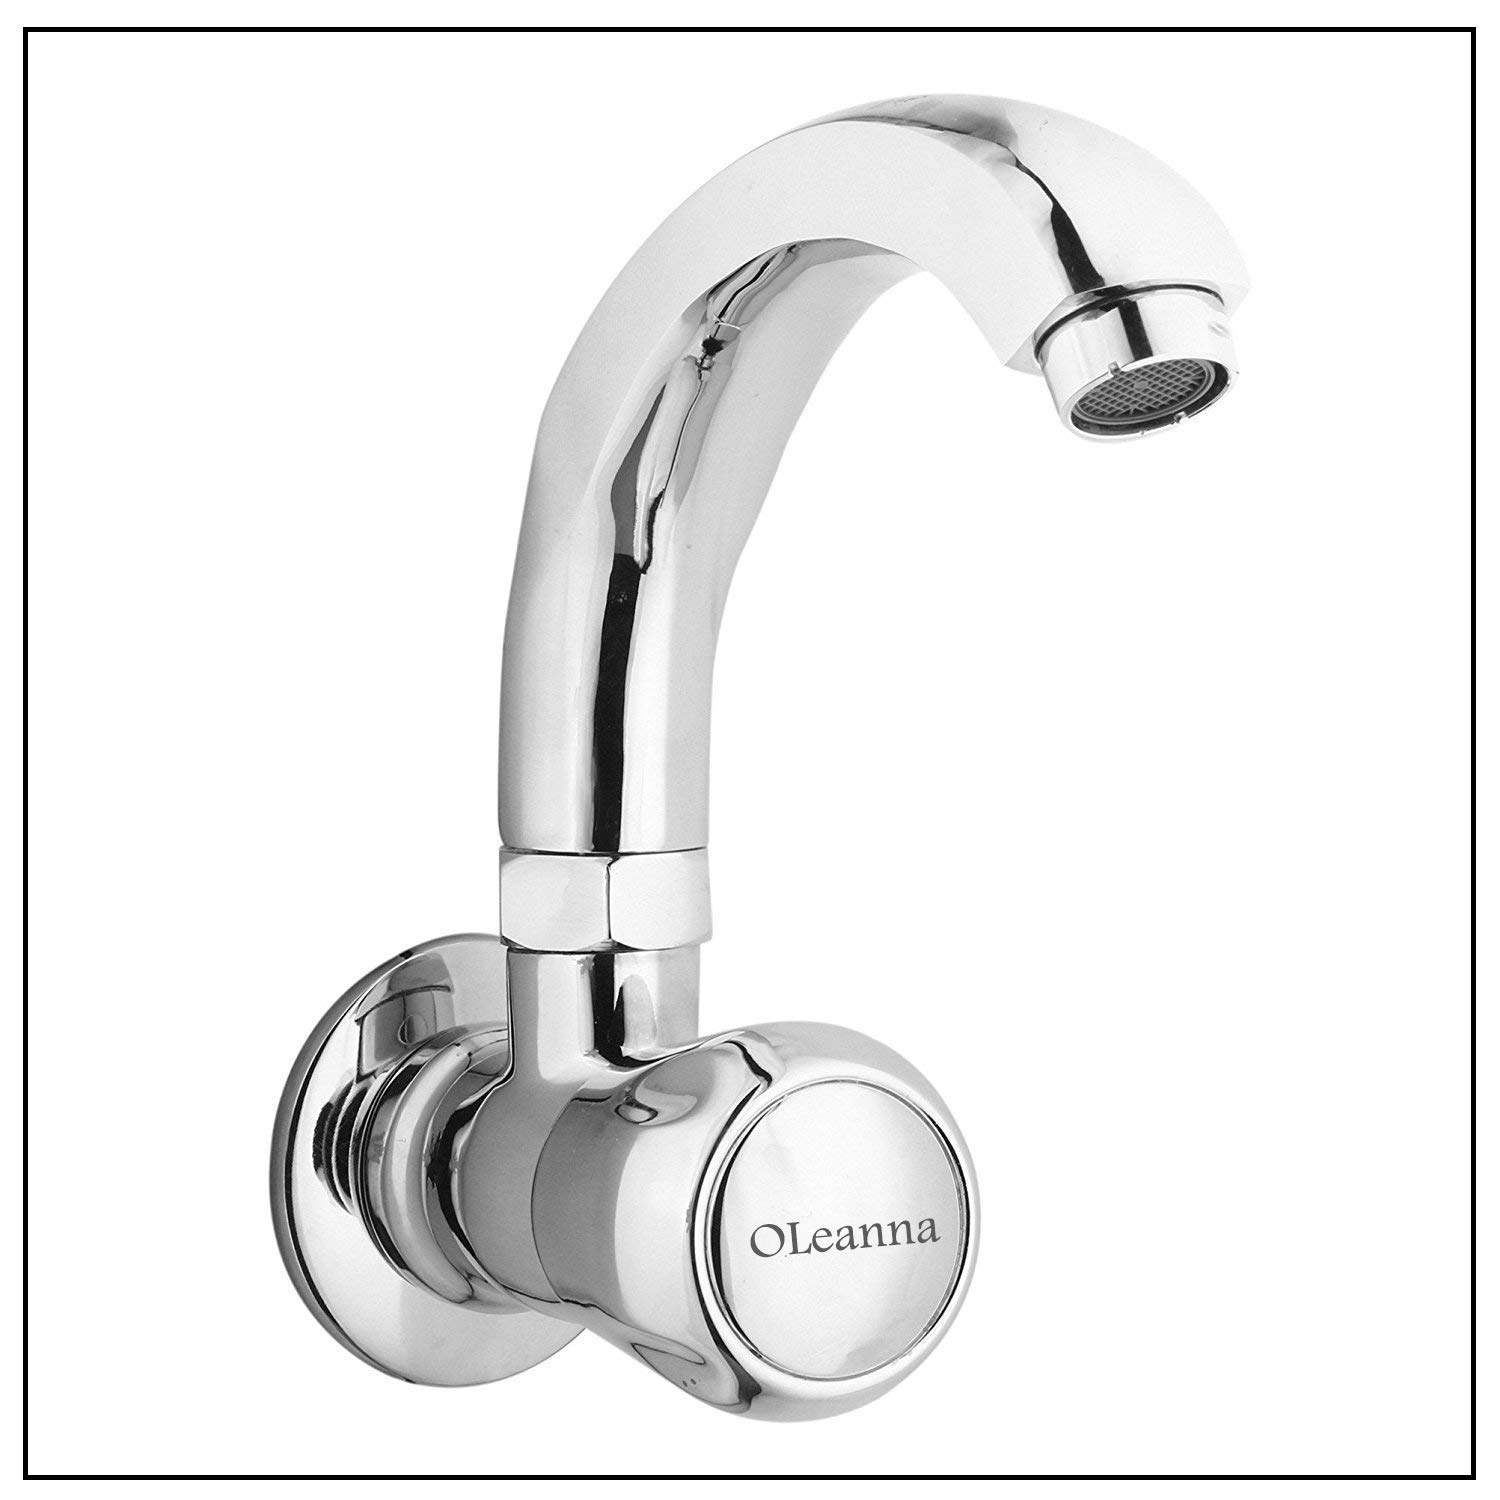 Oleanna Conti-sinkcock Spark Brass Sink Tap with Swivel Casted Spout Wall Mounted Model (Silver, Chrome Finish)